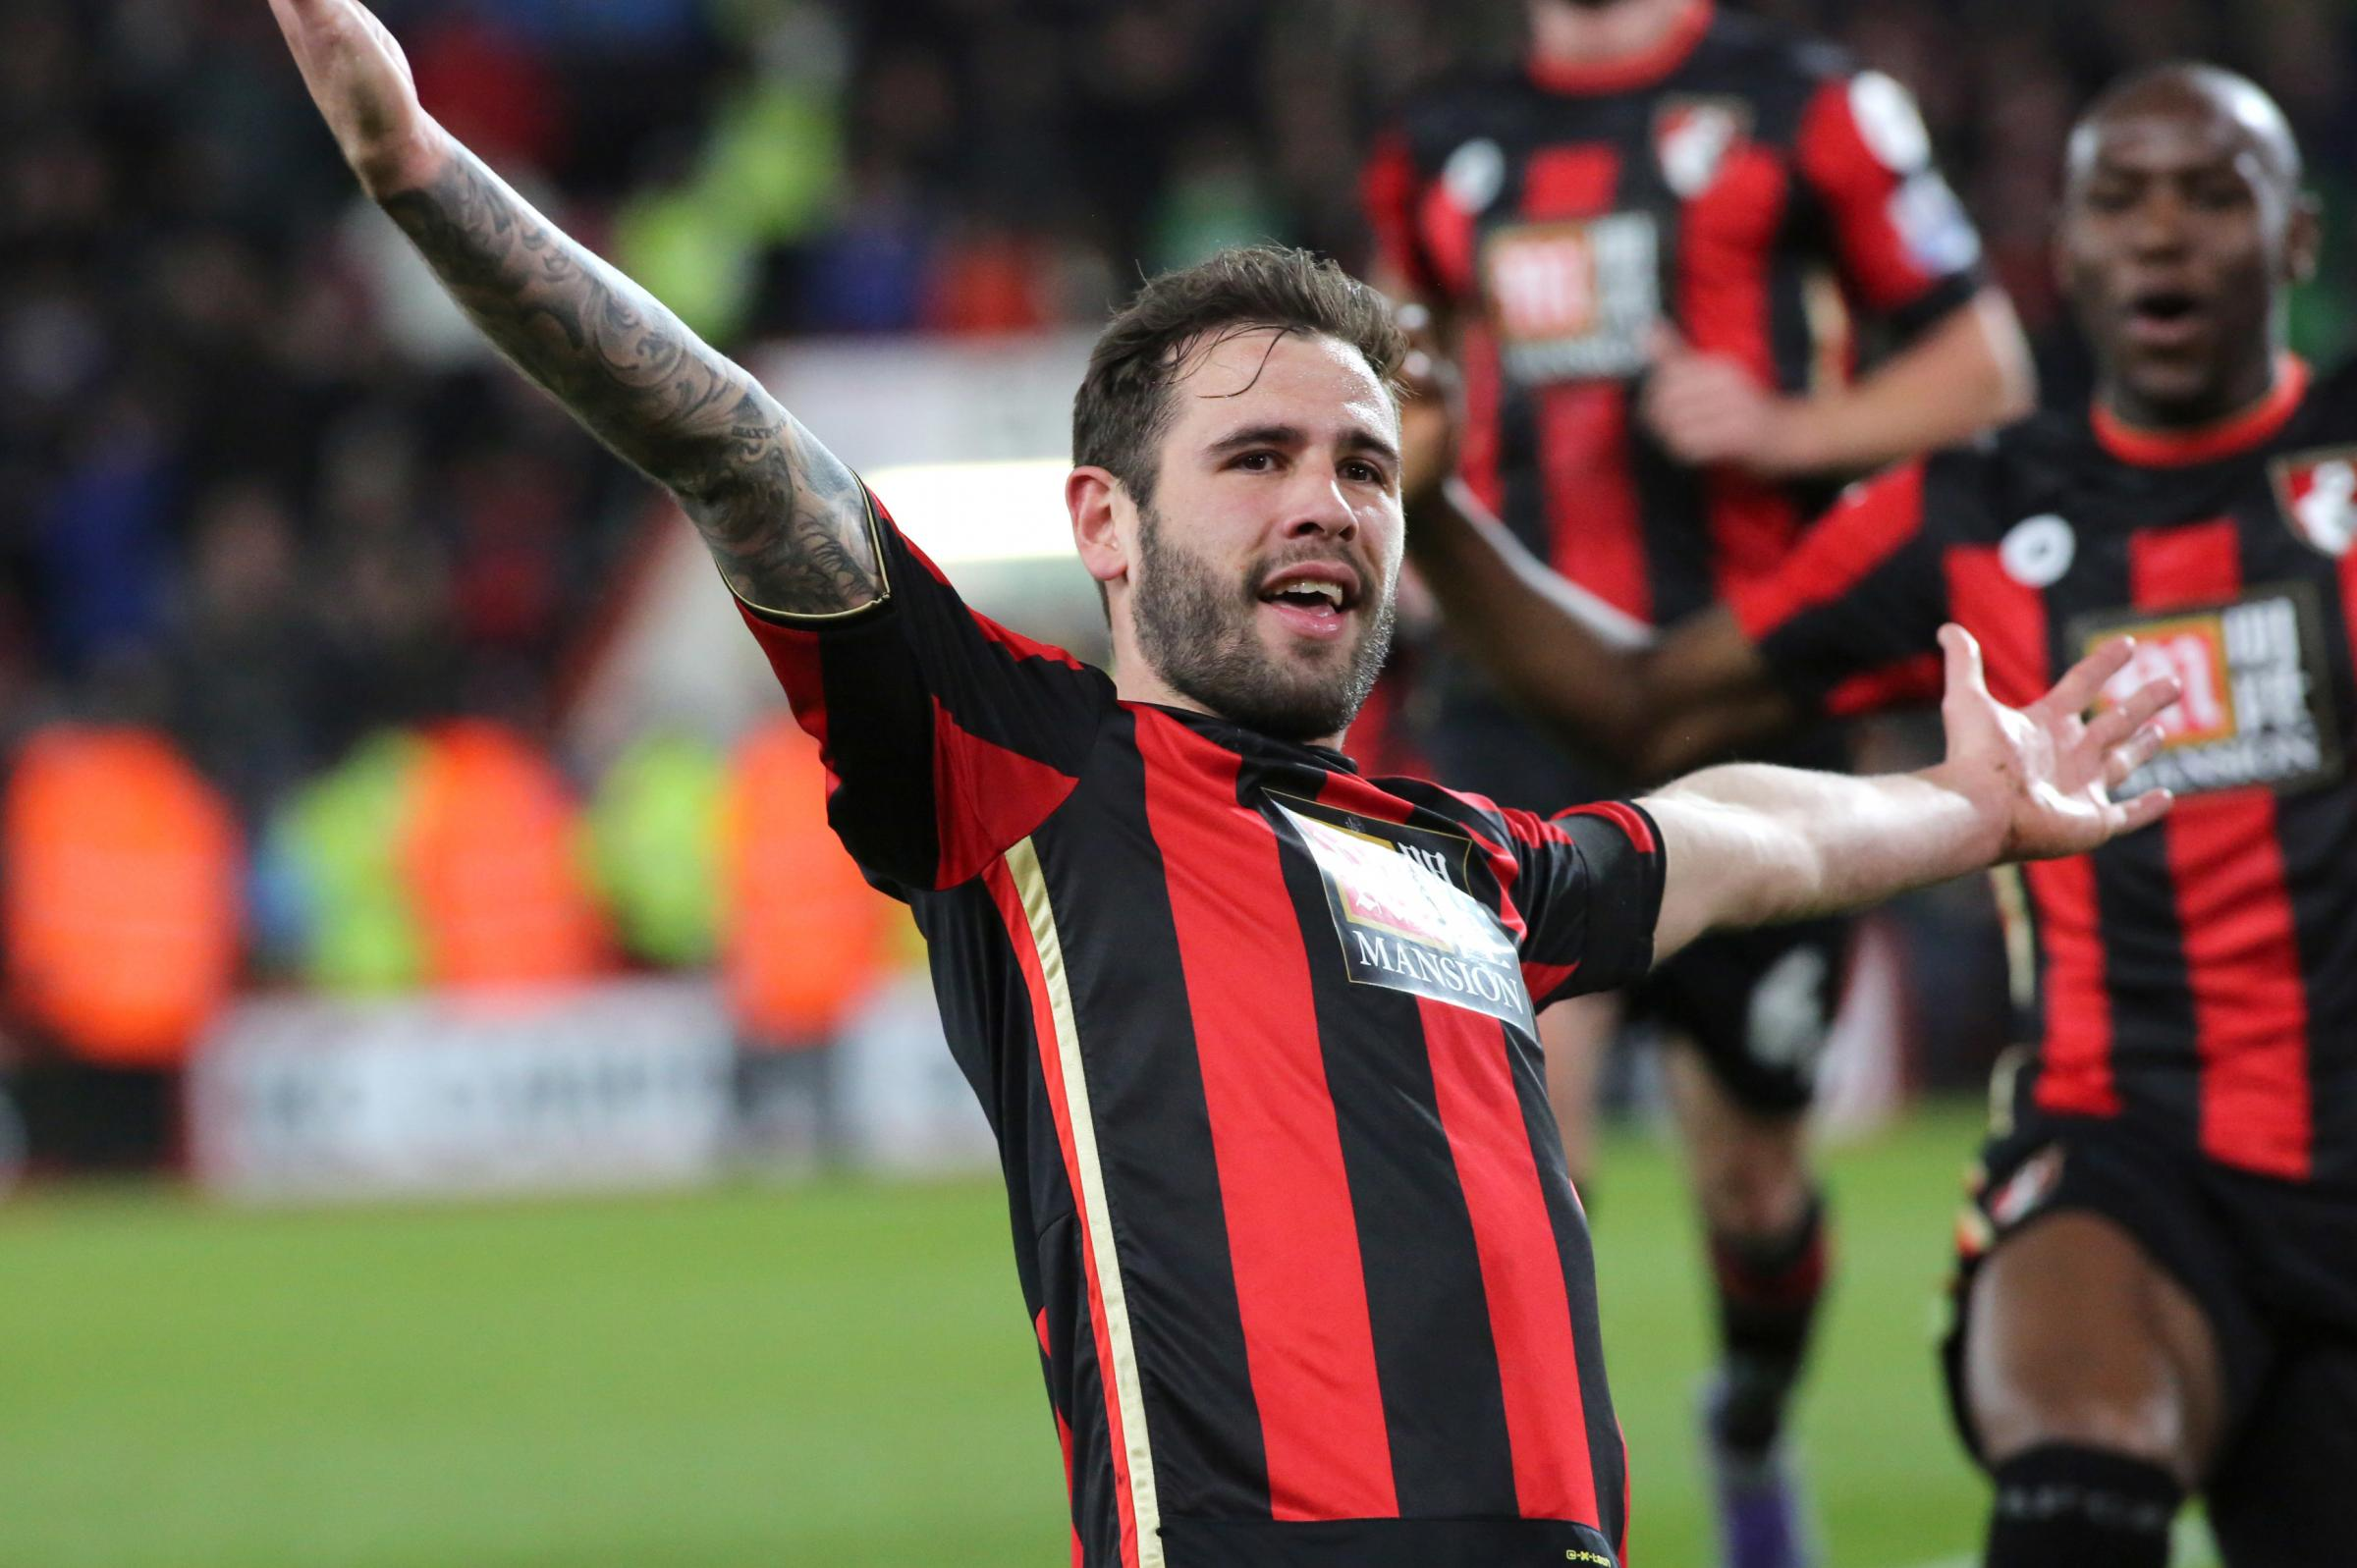 'We want to win for the fans' – Steve Cook fired up for AFC Bournemouth's clash with Southampton